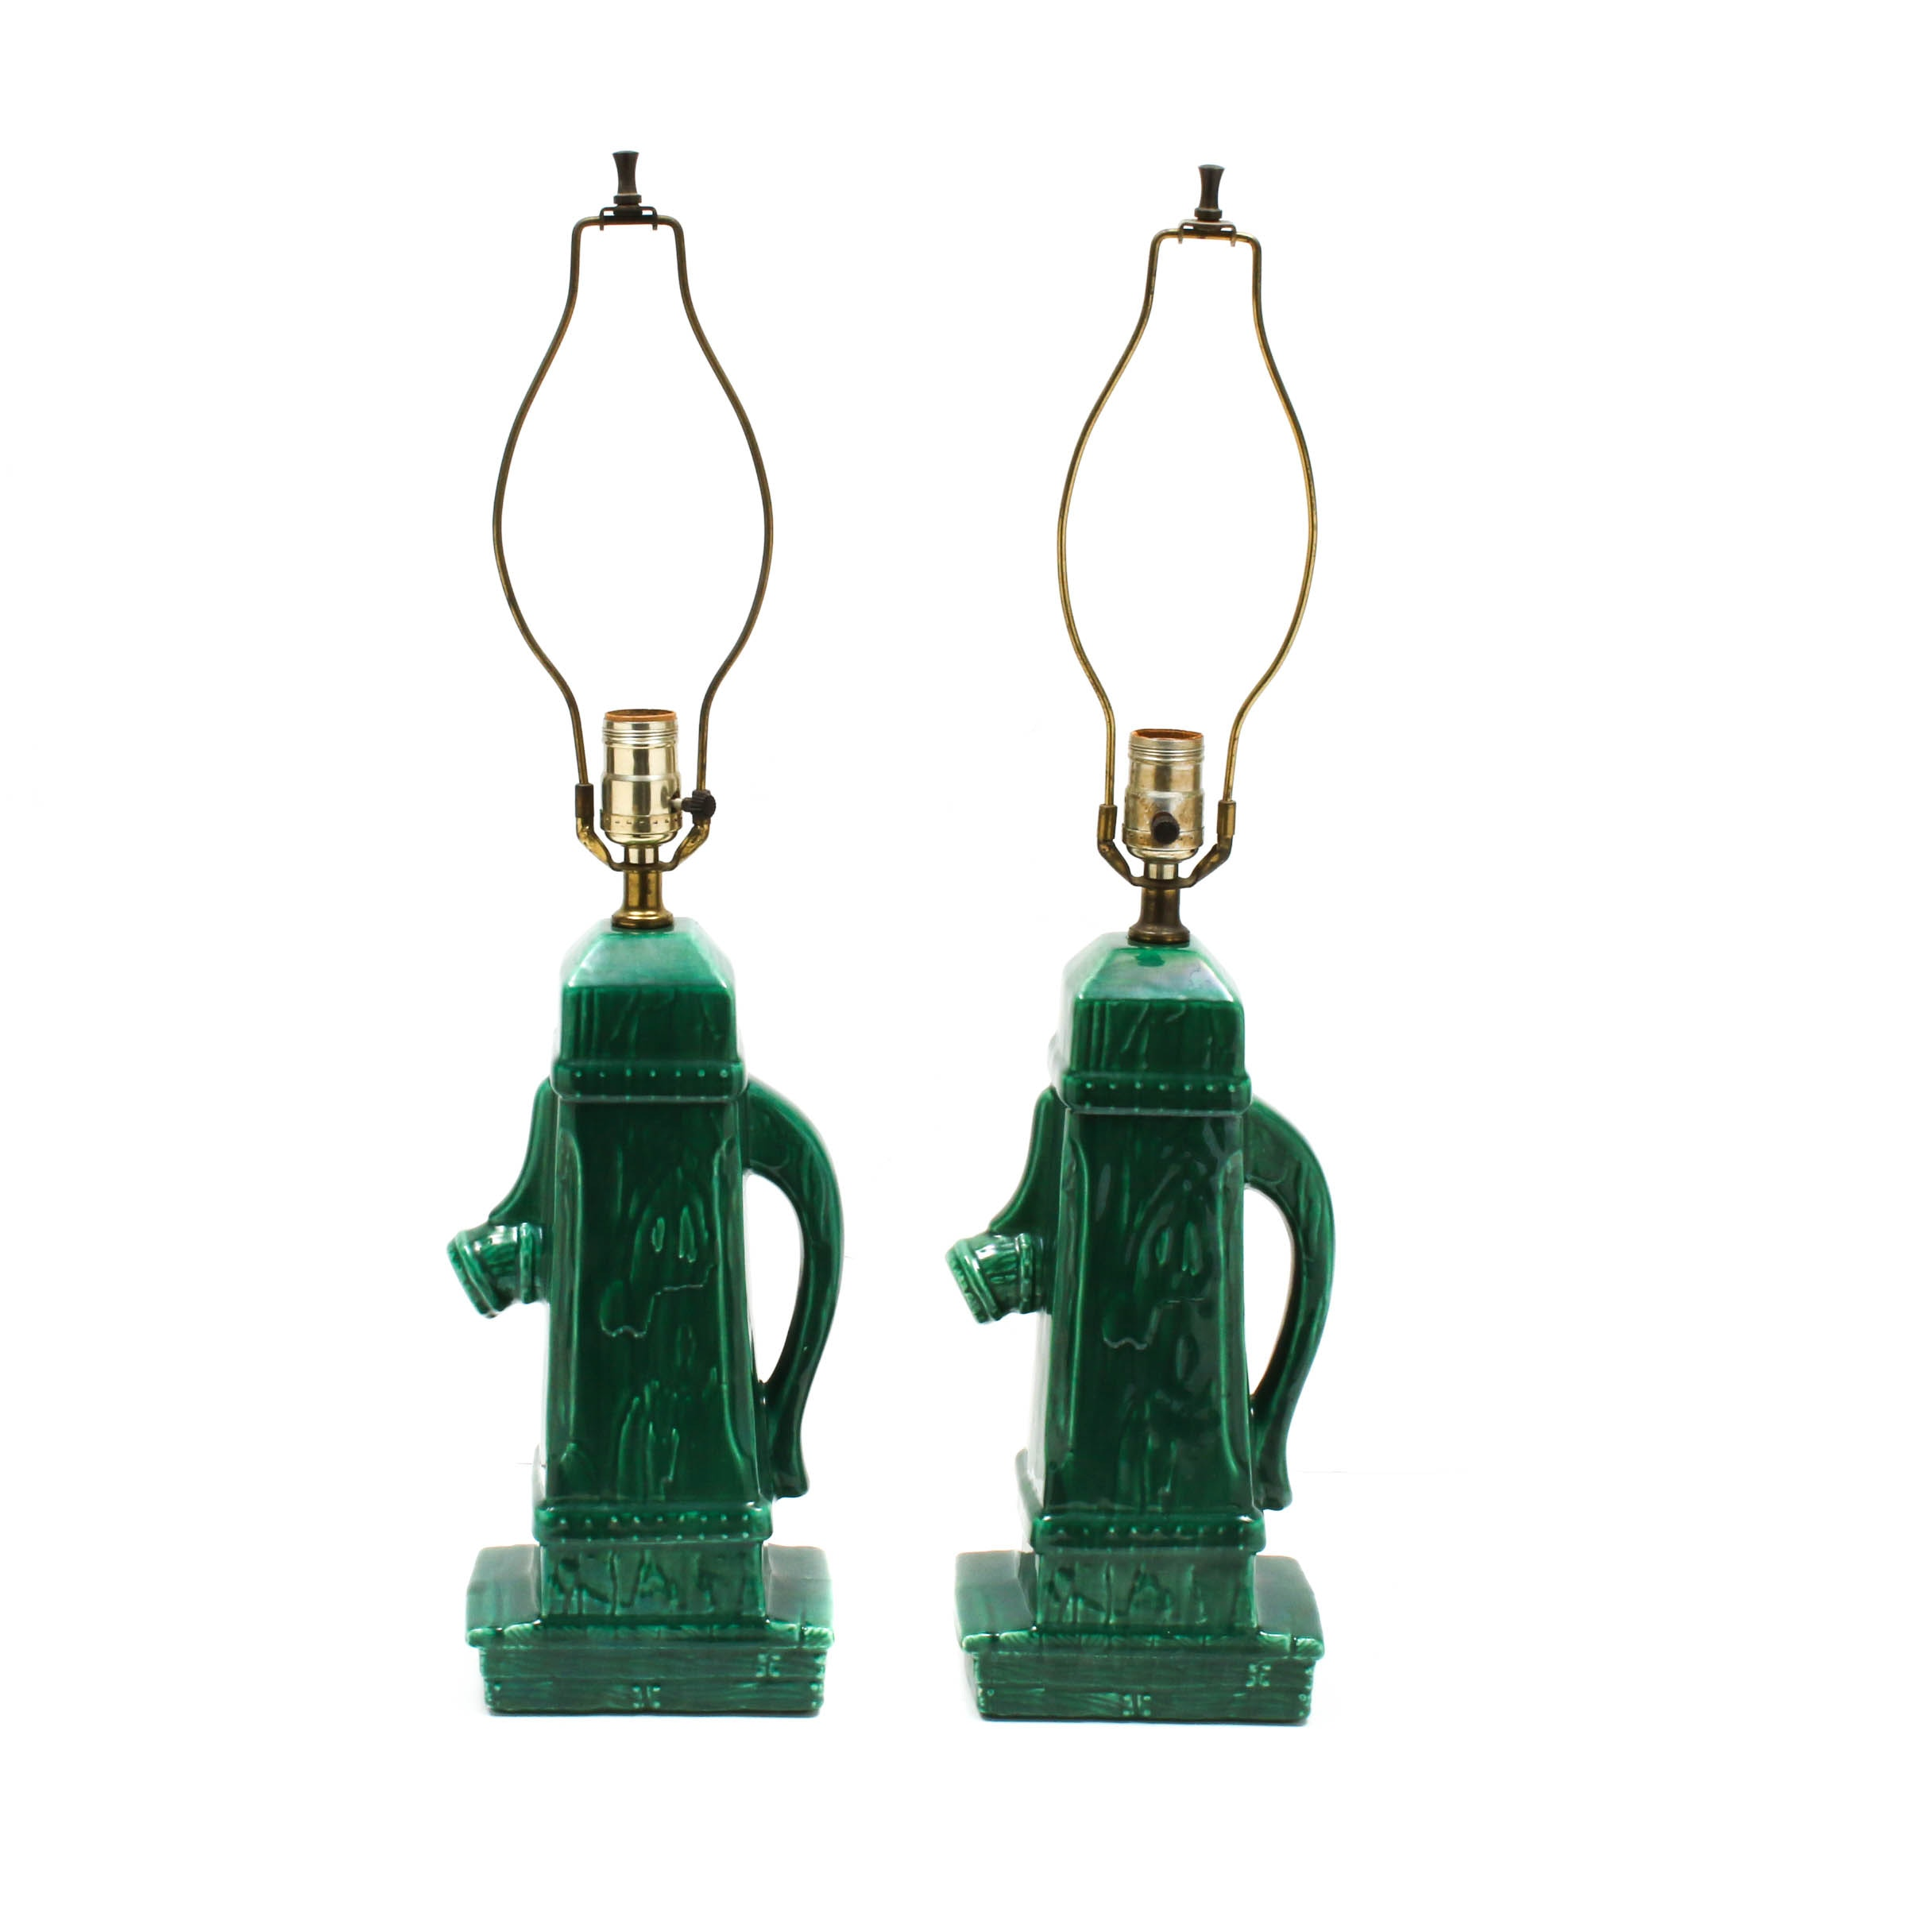 Ceramic Well Pump Table Lamps, Mid-Century